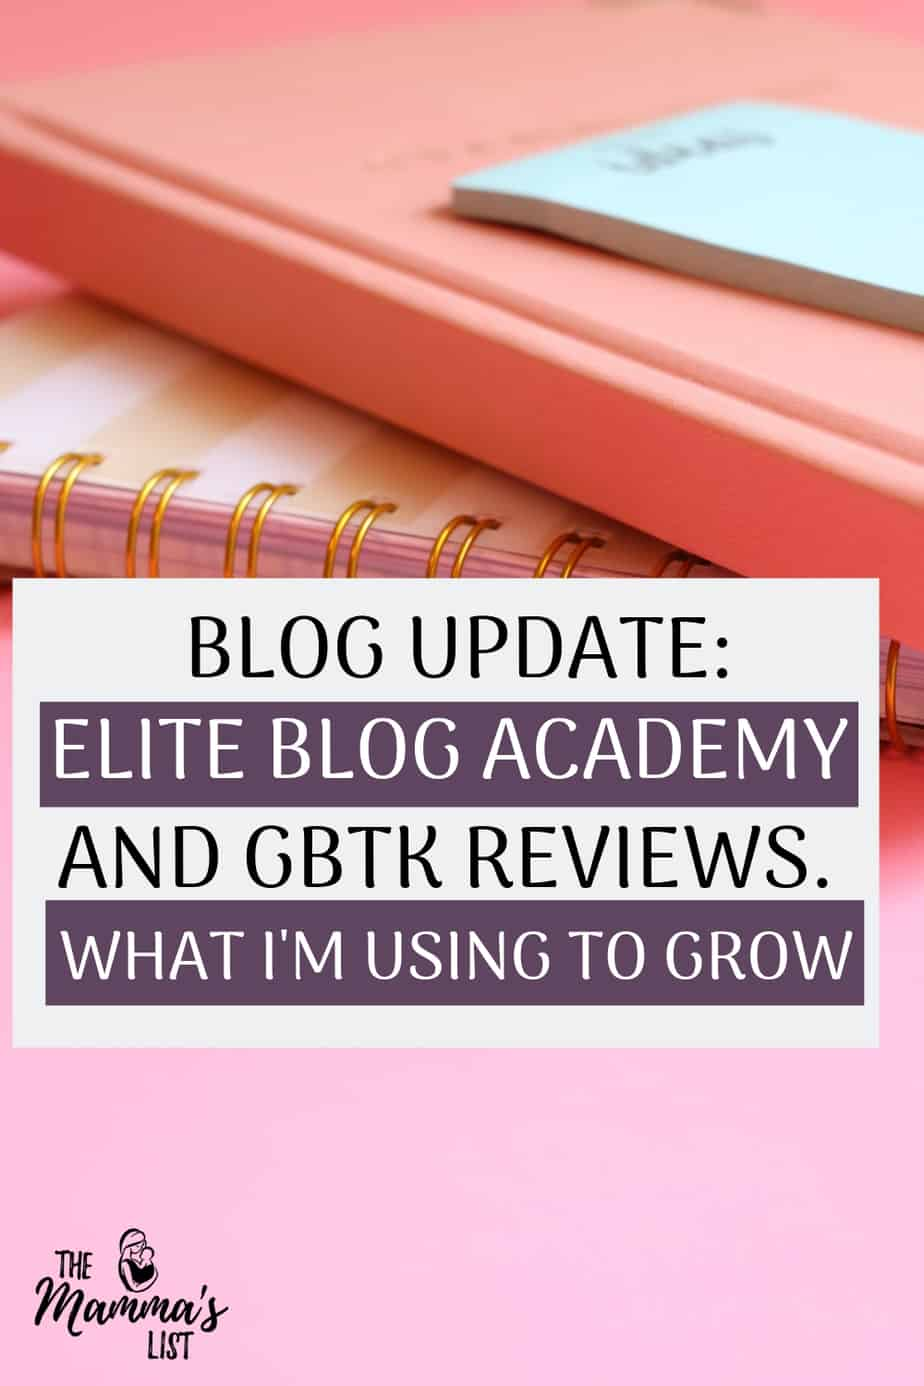 Blog Update - How I've been using the Genius Bloggers Toolkit and Elite Blog Academy to grow my blog. What's working, what's not working, and what I'm using next to drive blog growth.